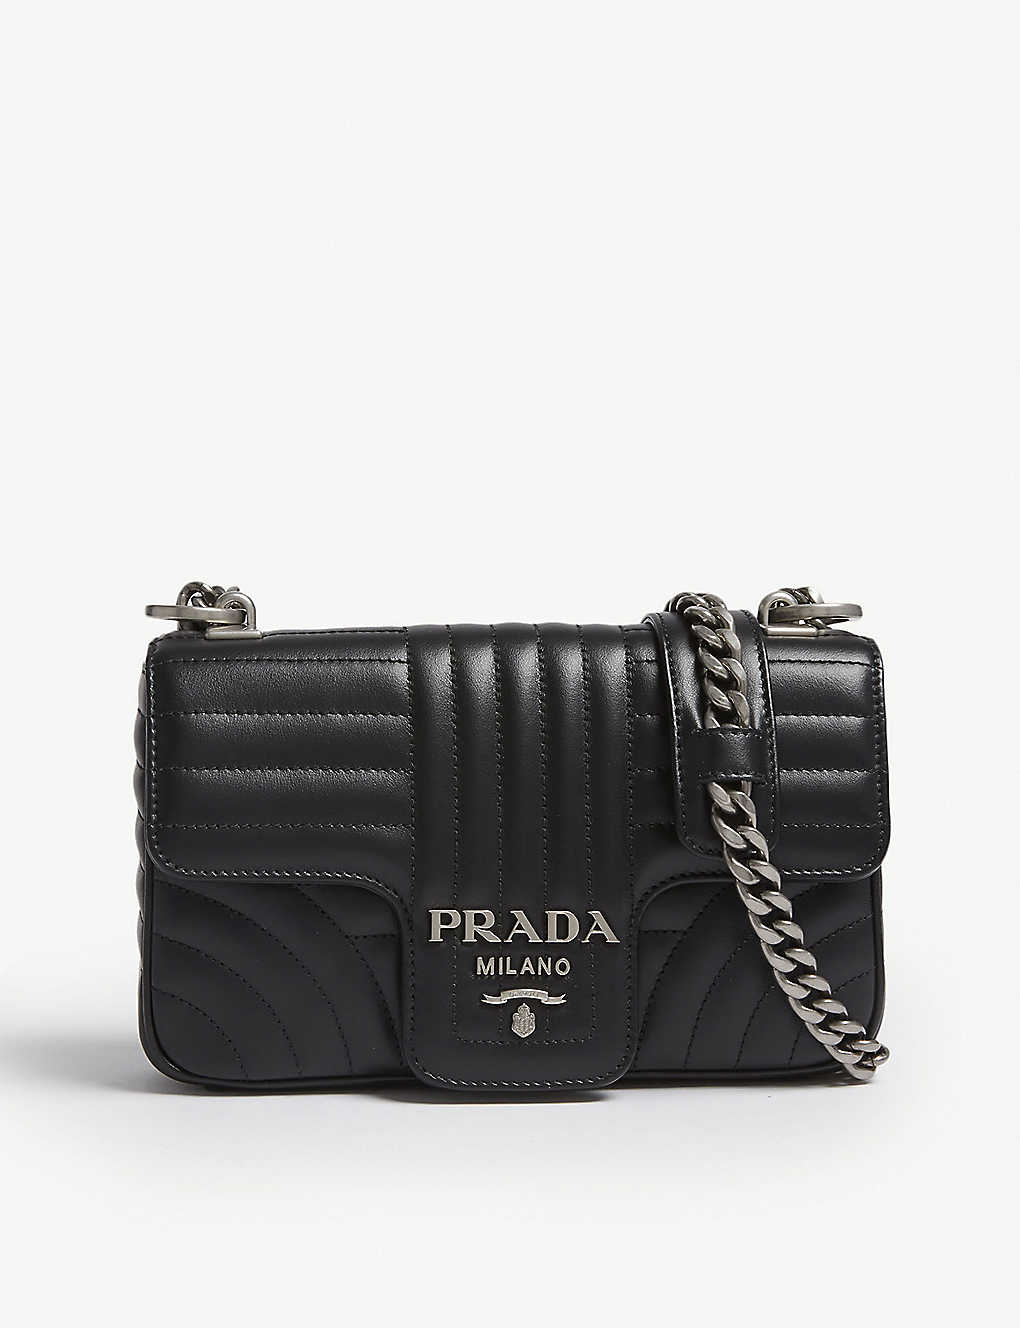 23b9a620f849 PRADA - Diagramme small quilted leather shoulder bag | Selfridges.com